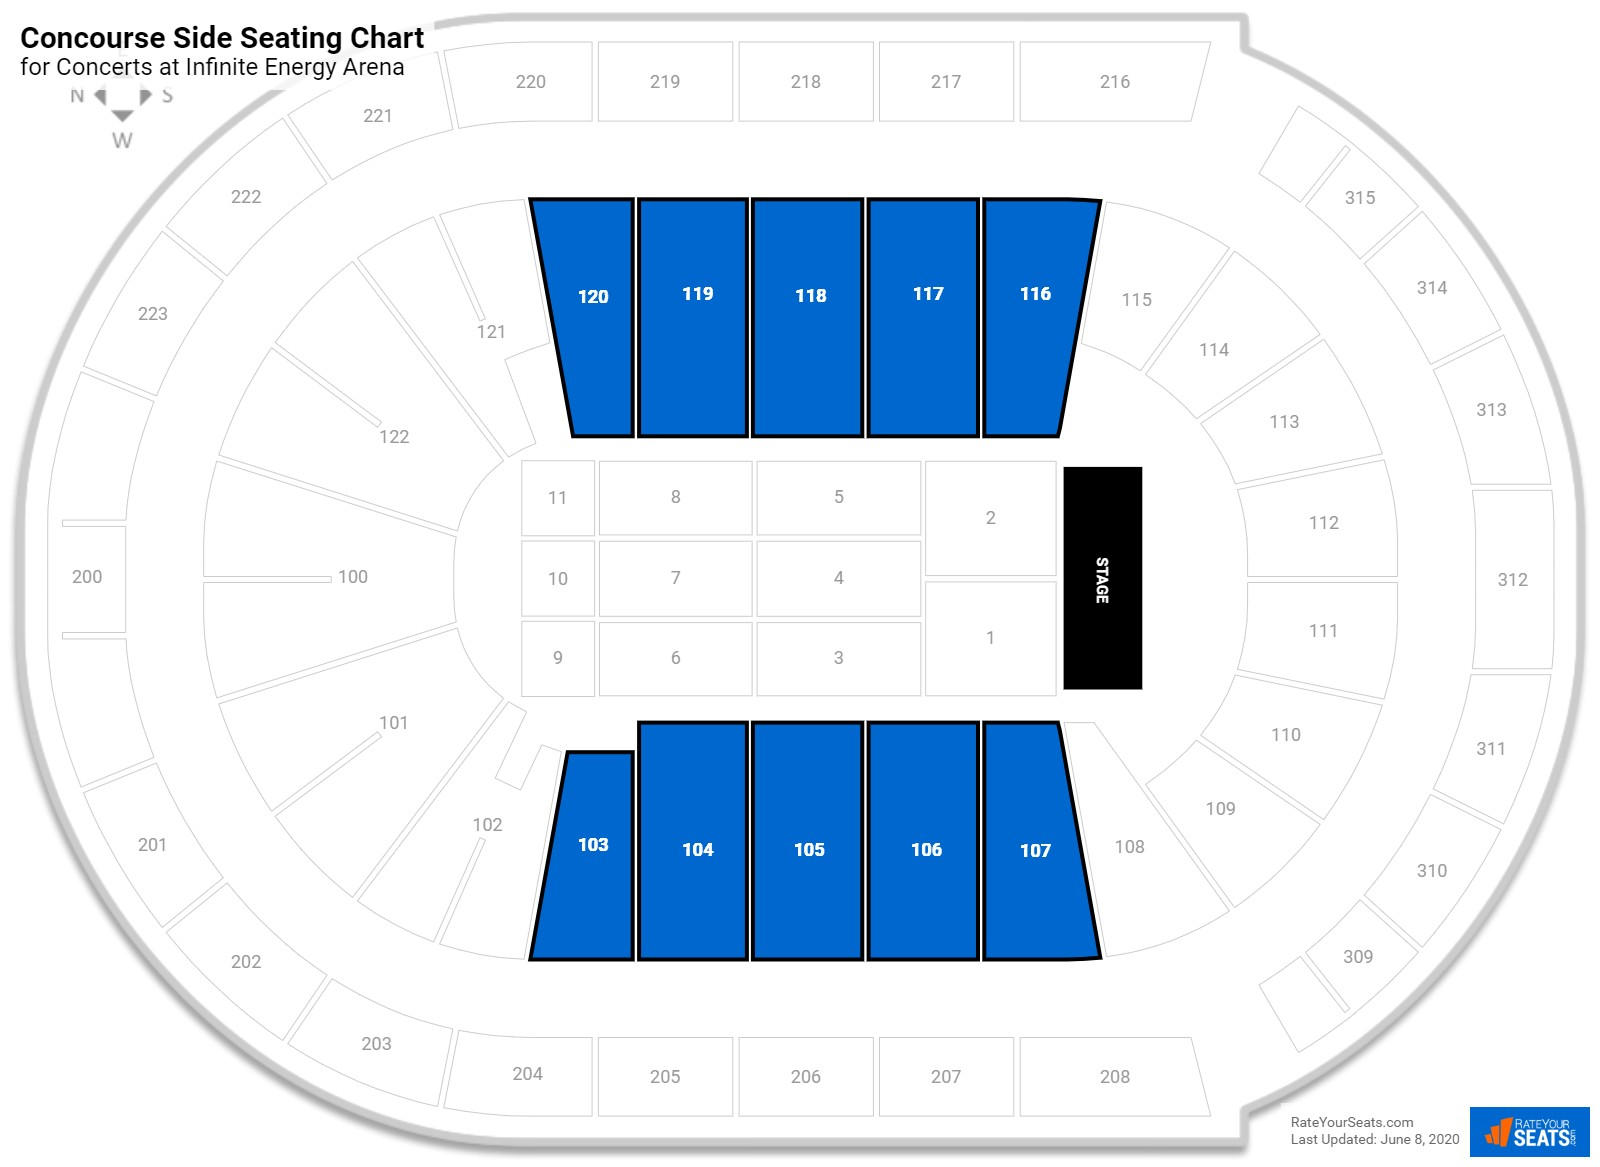 Infinite Energy Arena Concourse Side Seating Chart